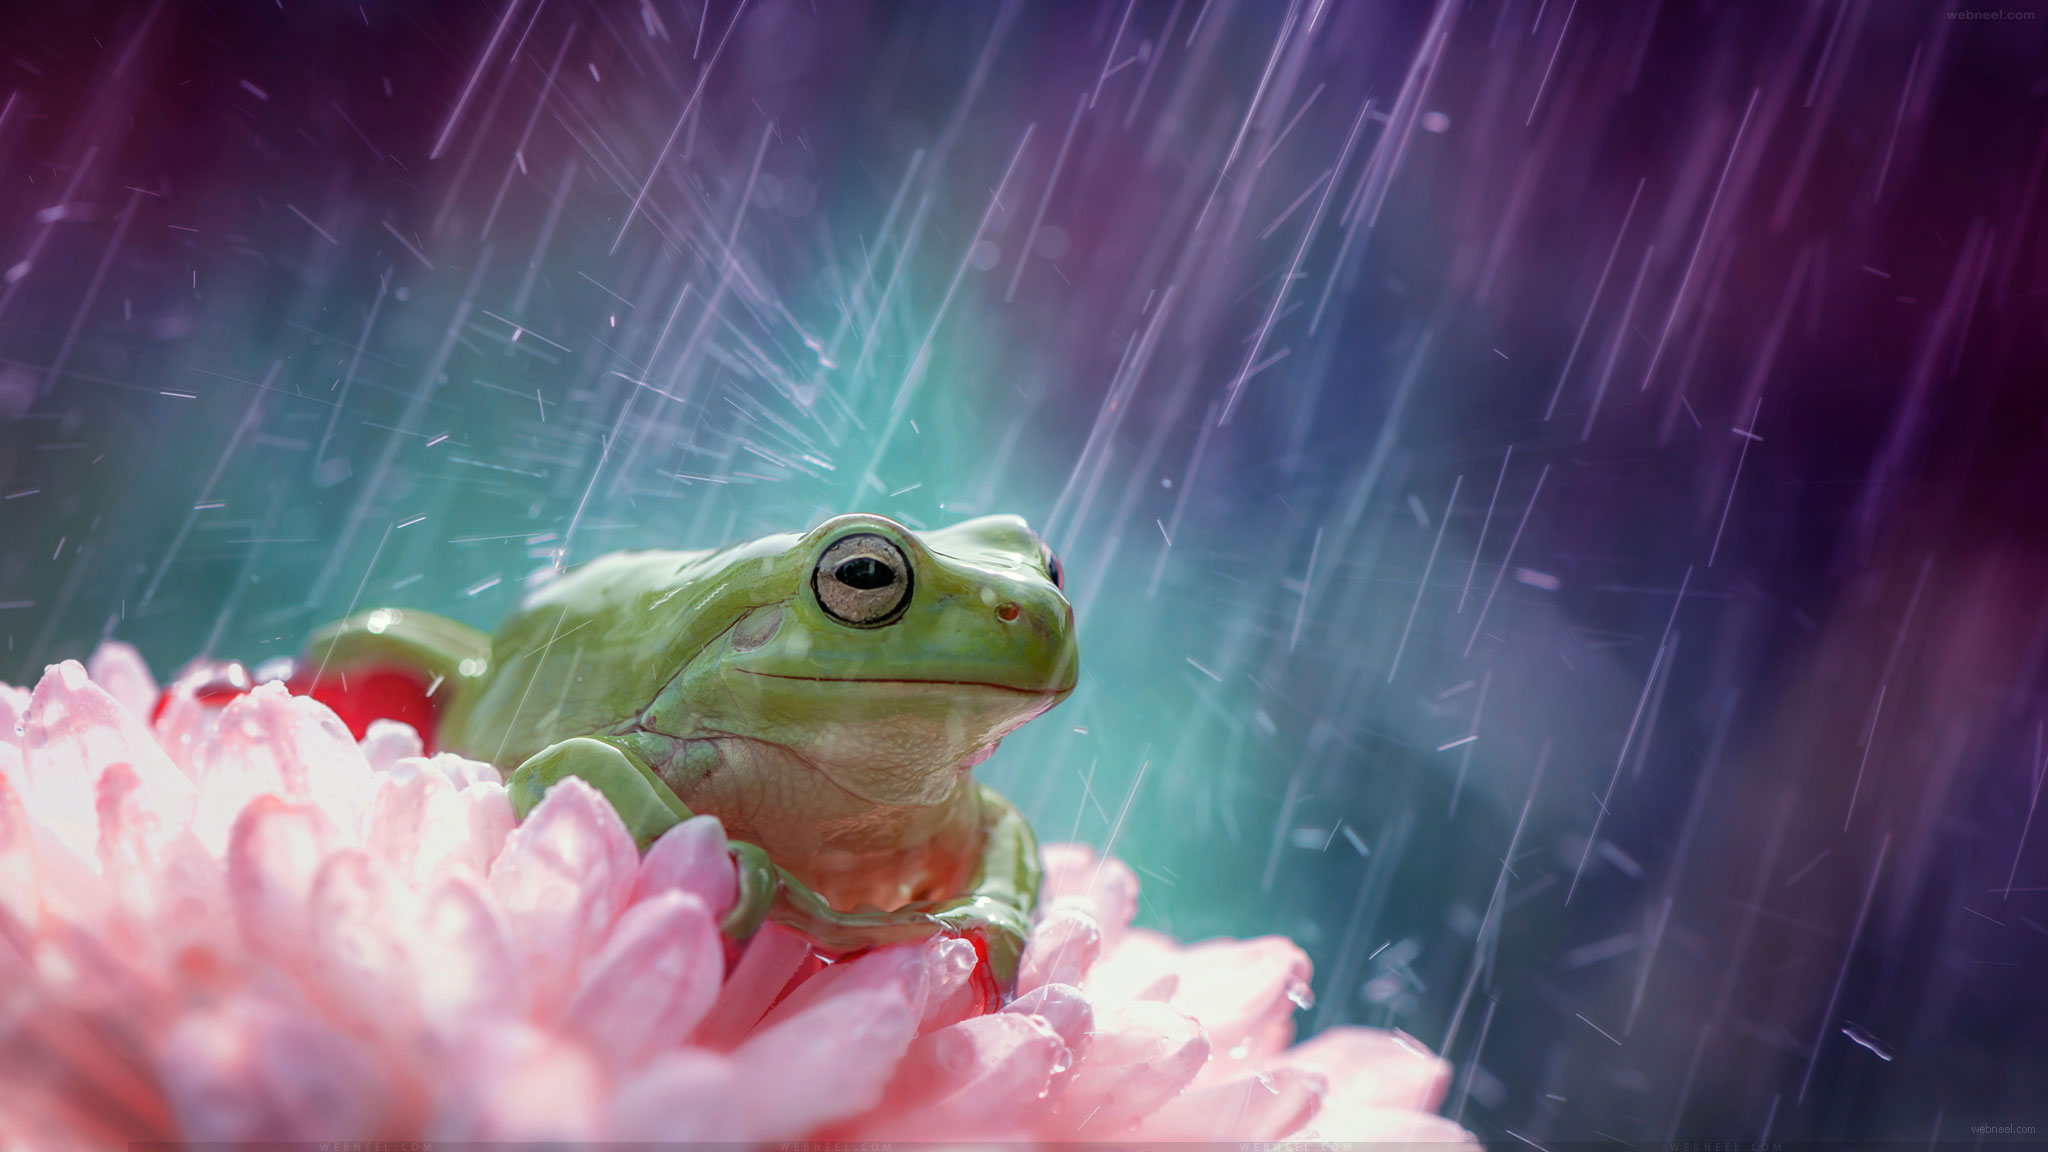 rain wallpaper by ahmadbaihaki